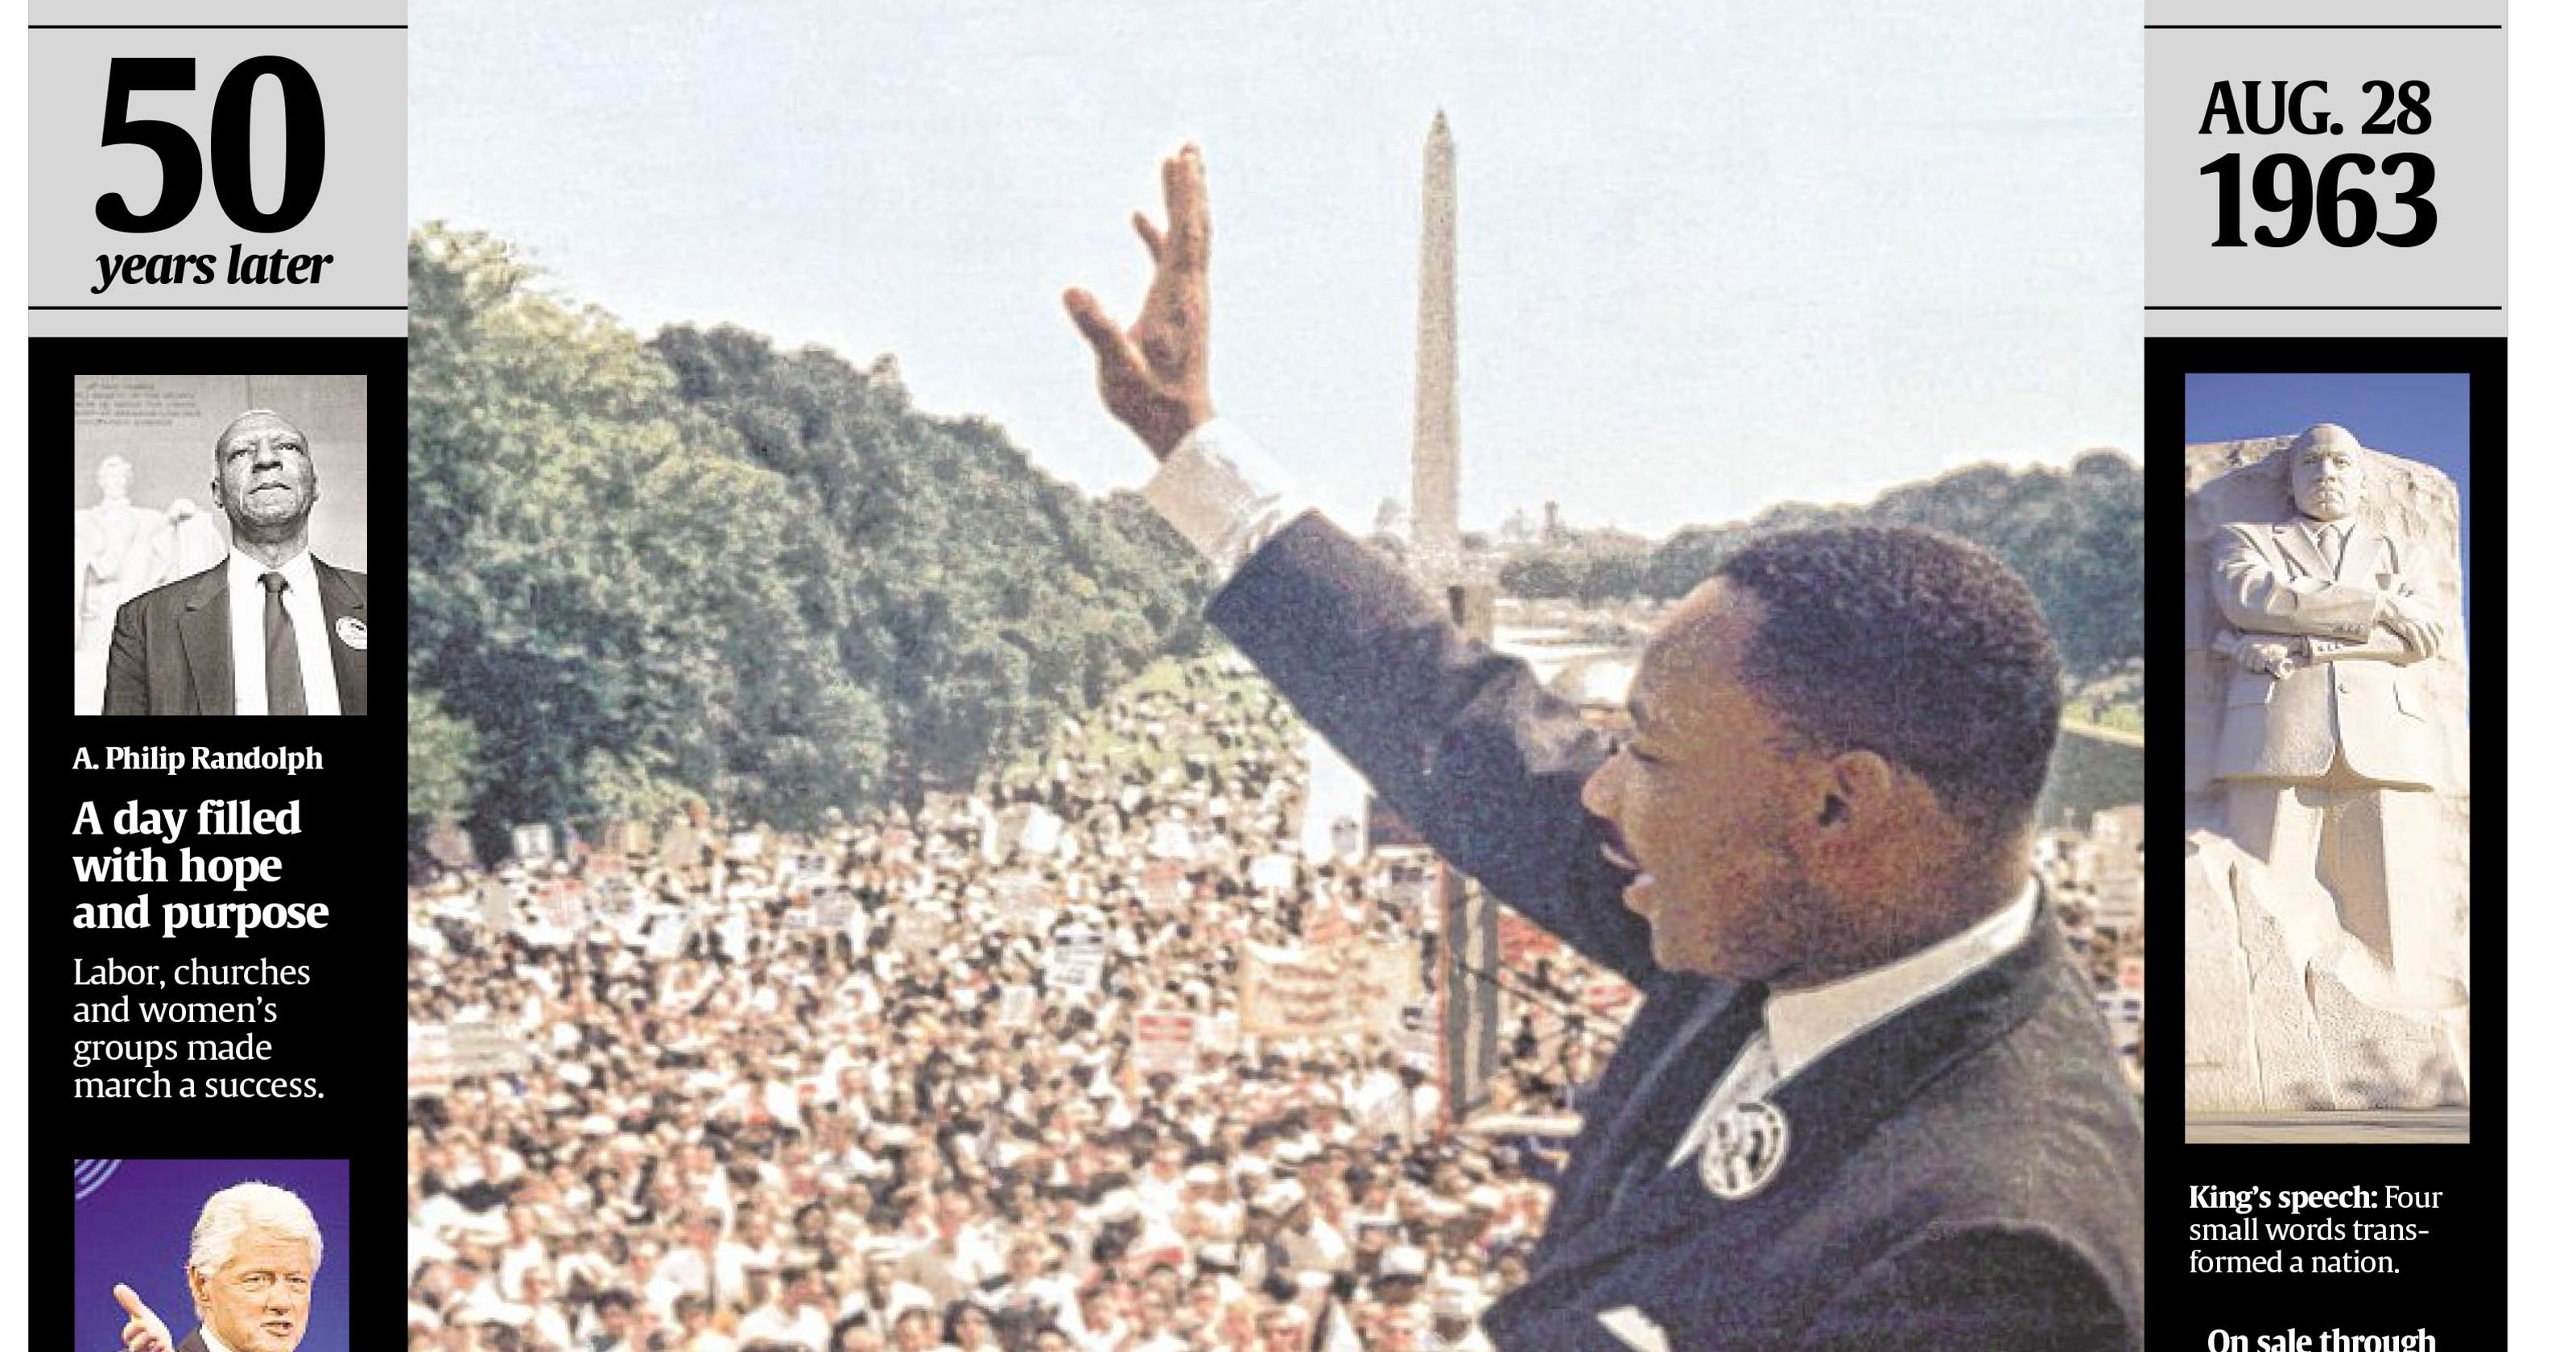 What you didn't know about King's 'Dream' speech